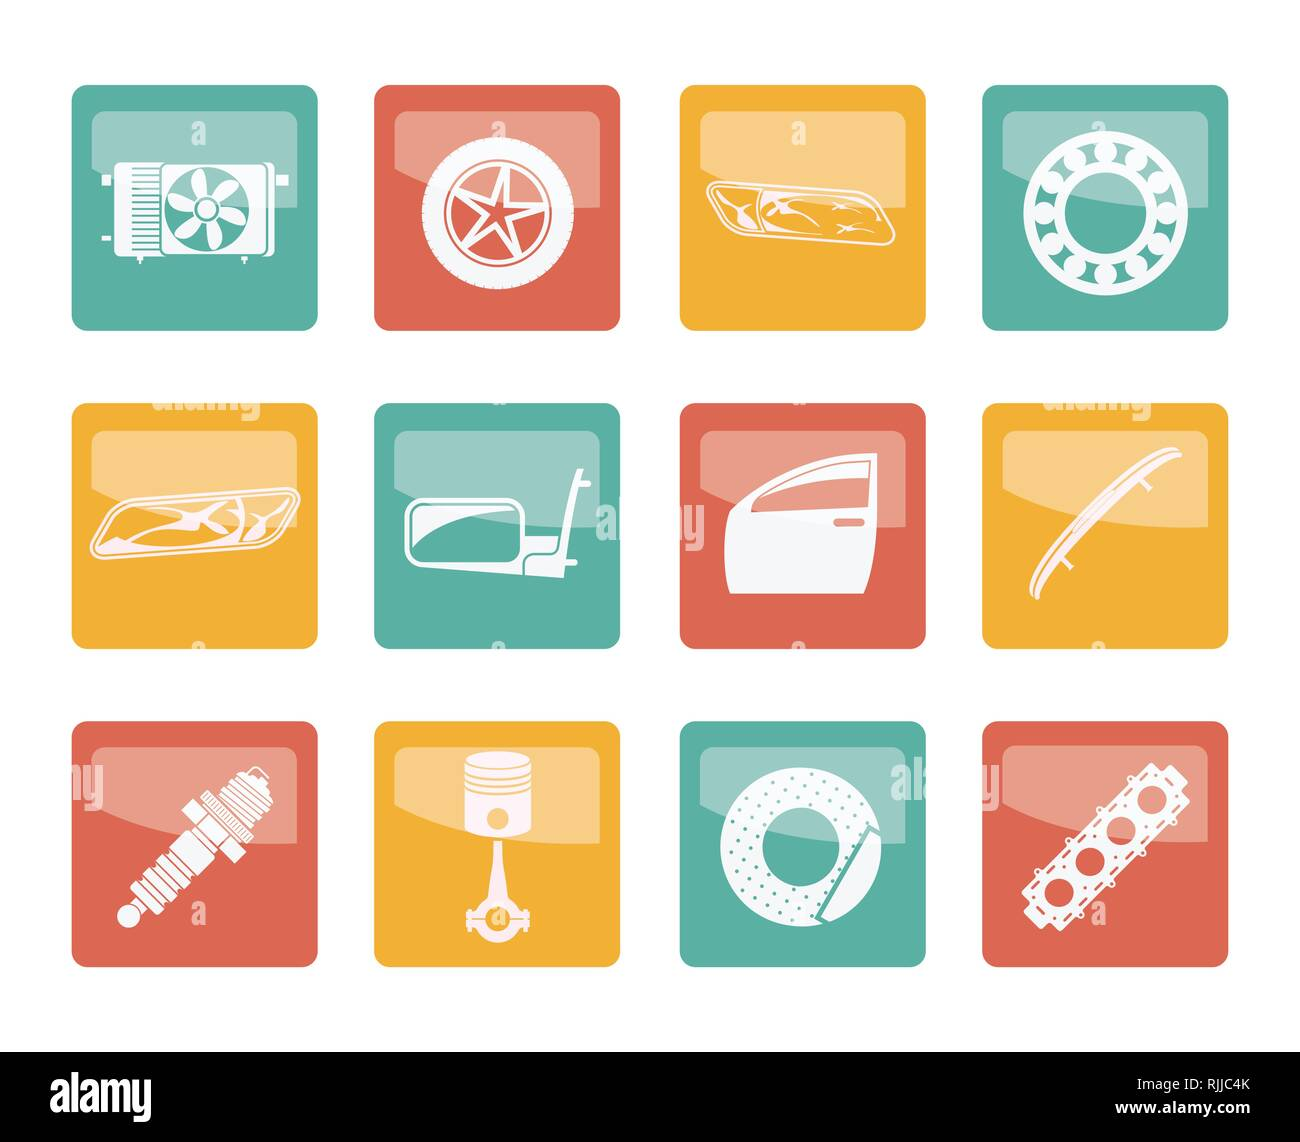 Realistic Car Parts and Services icons over colored background - Vector Icon Set 1 - Stock Vector